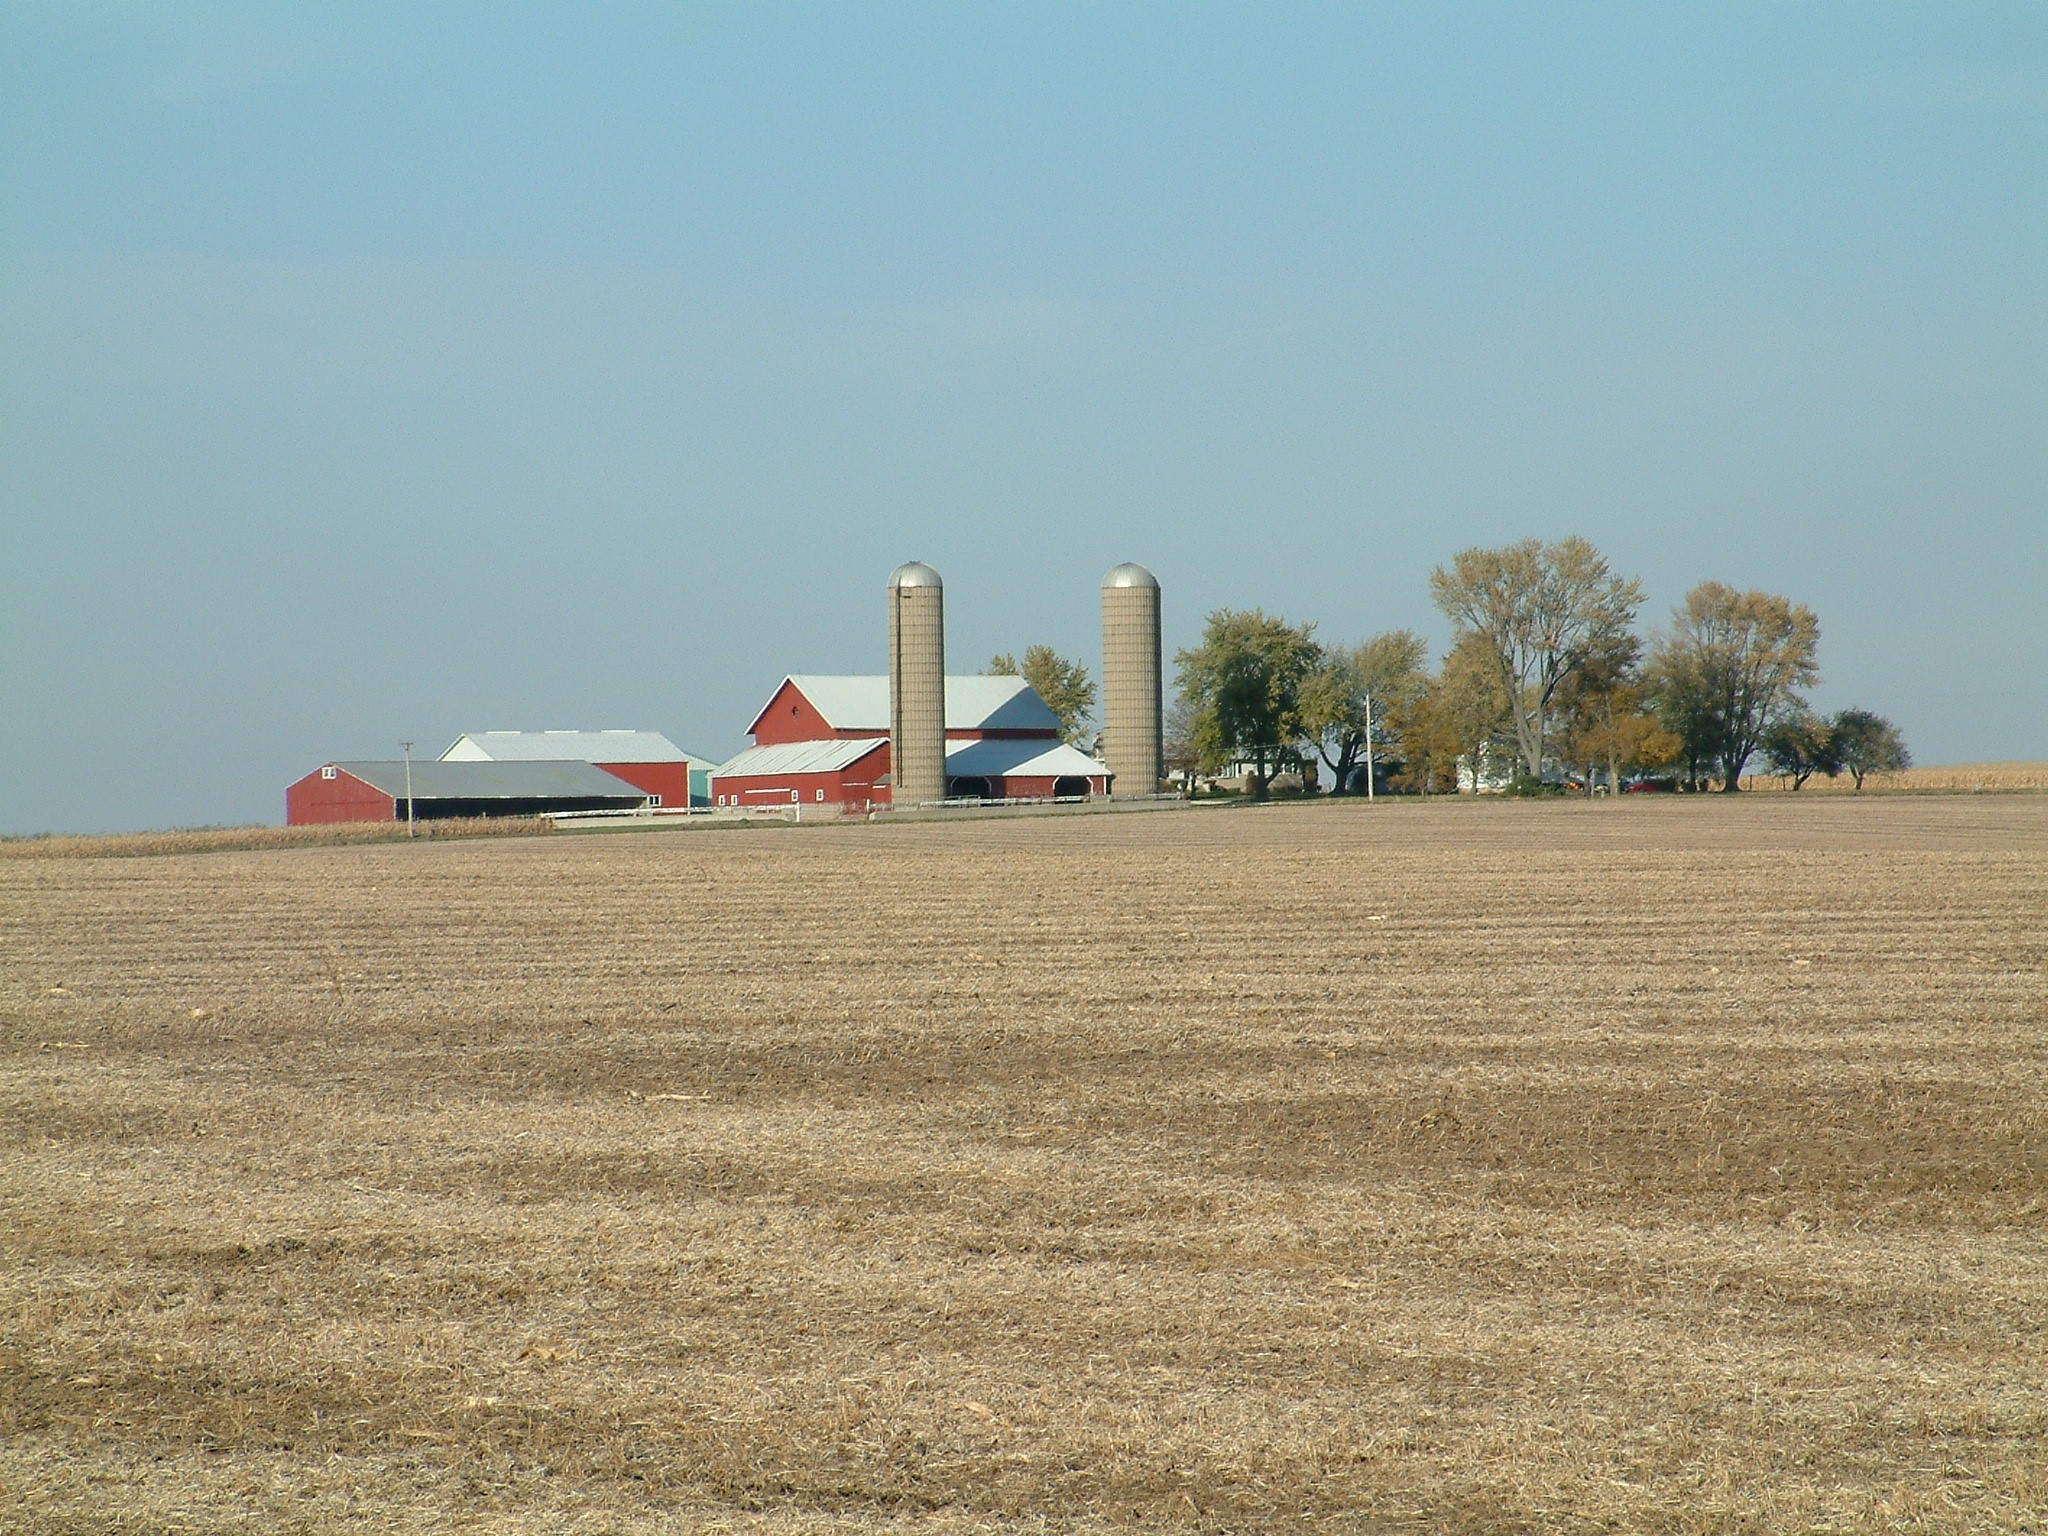 farm1.jpg - Farm in Northern Illinois